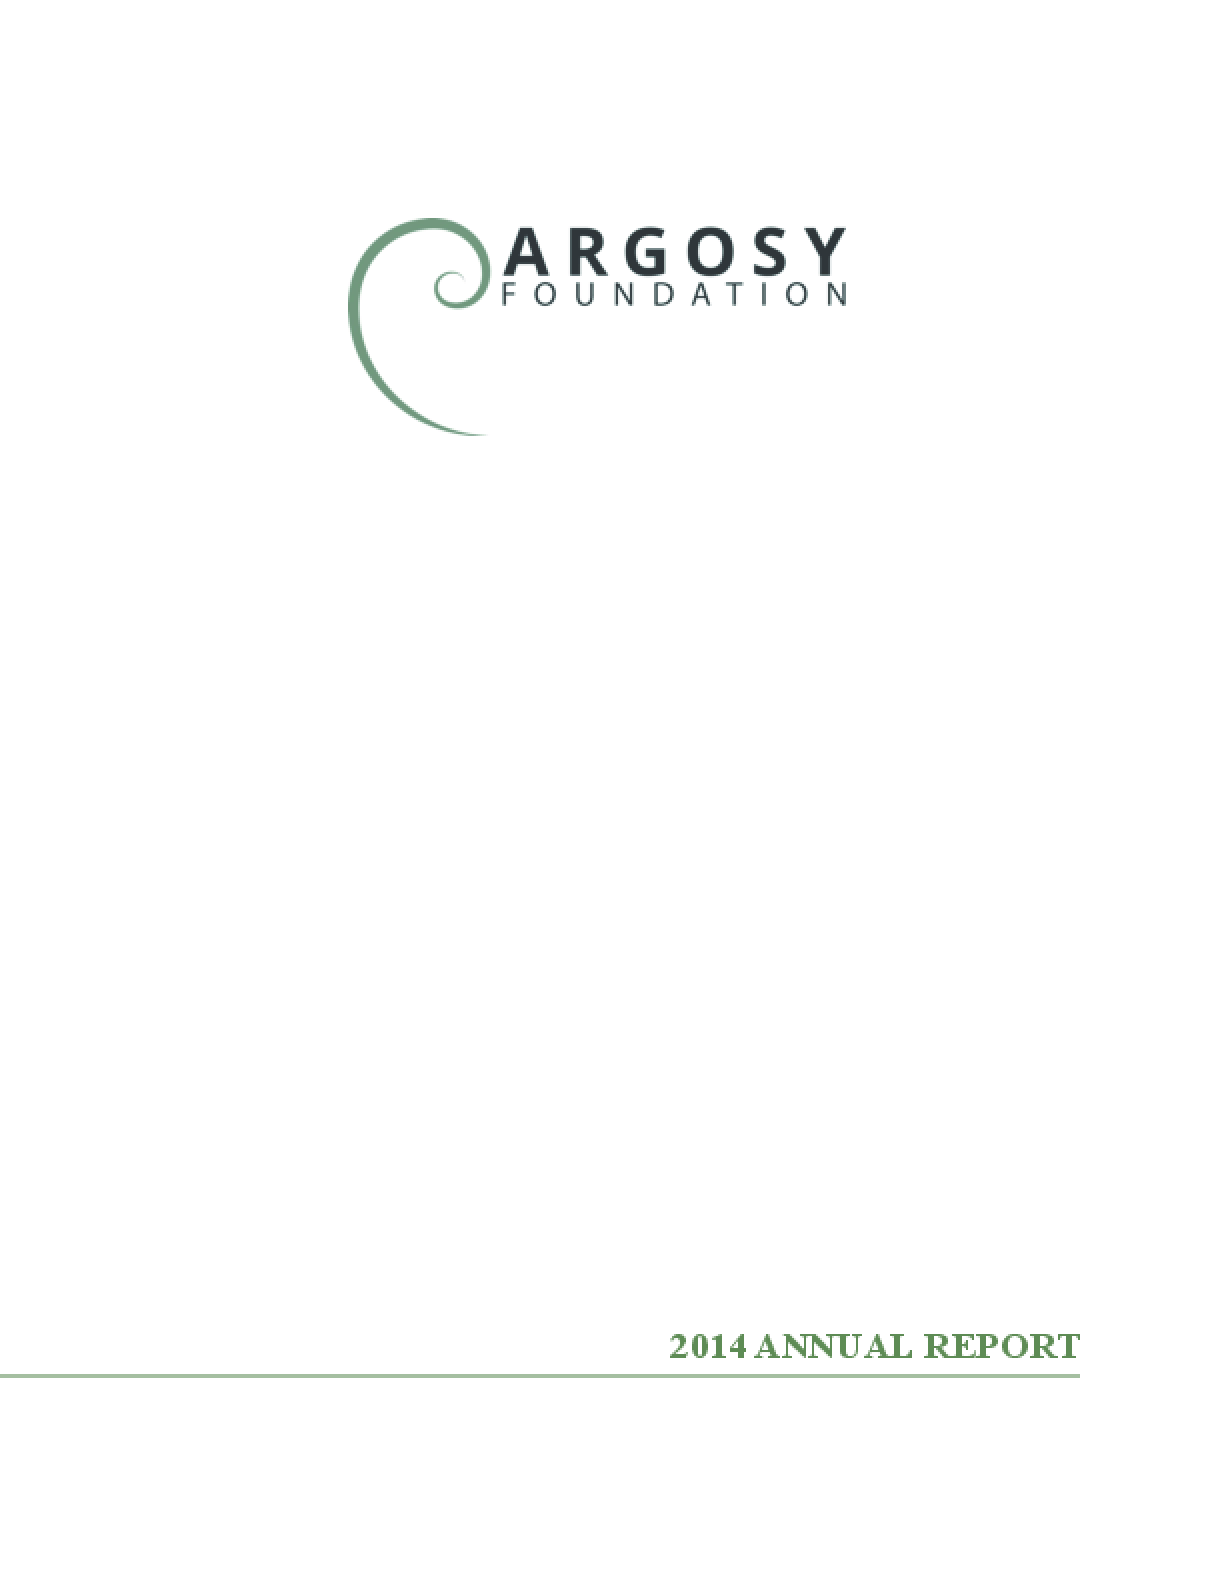 Argosy Foundation 2014 Annual Report